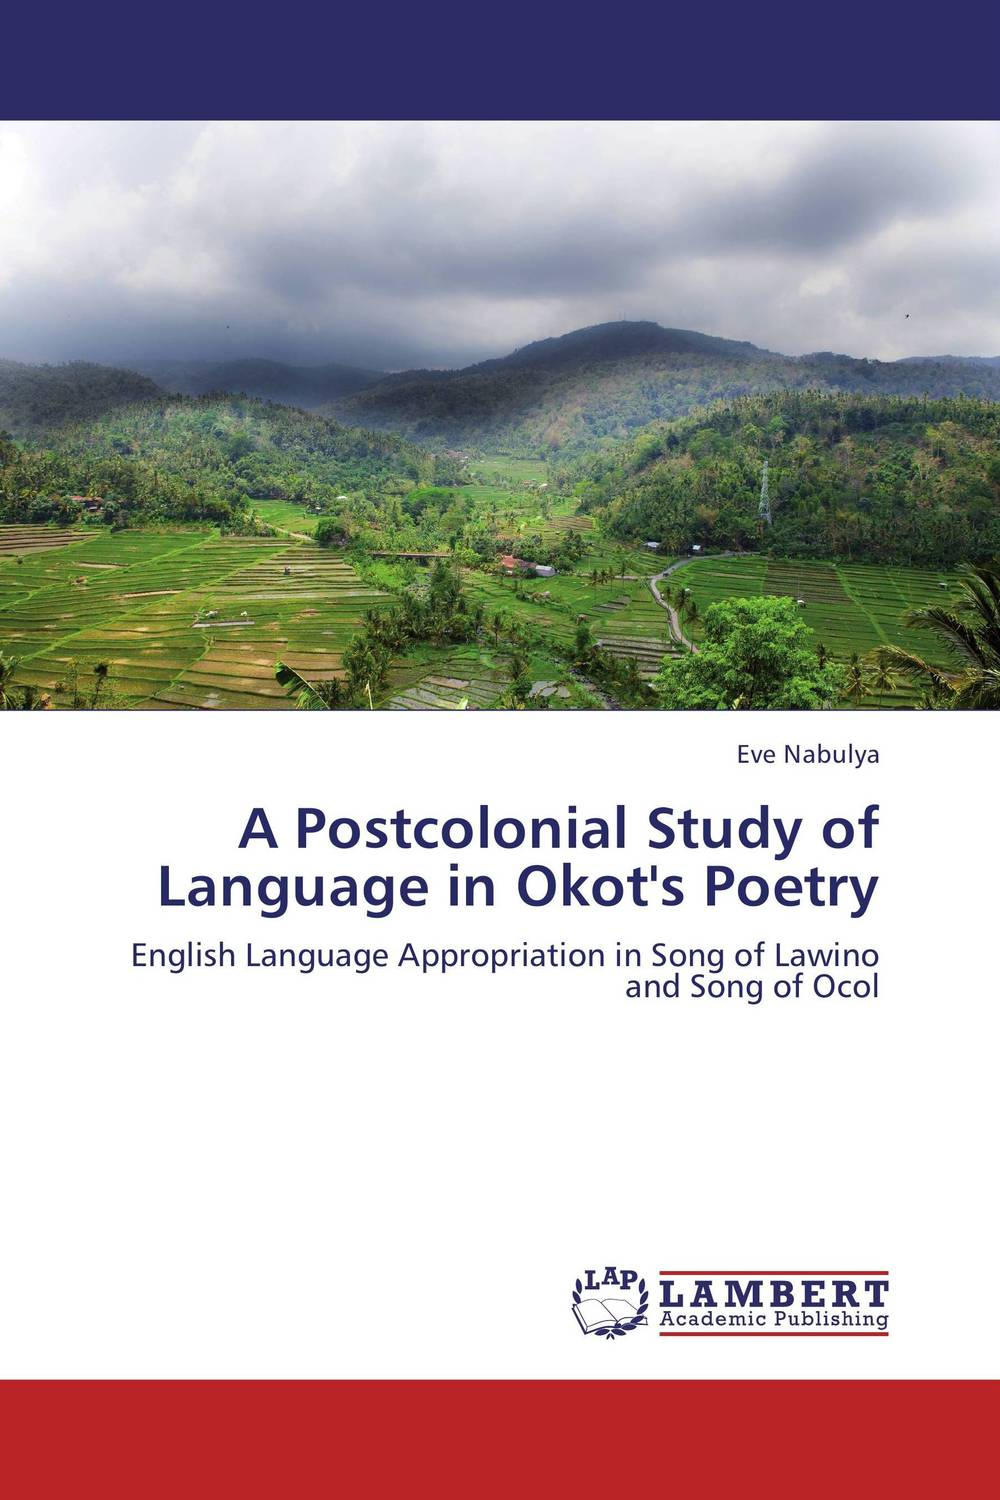 A Postcolonial Study of Language in Okot's Poetry a study of english